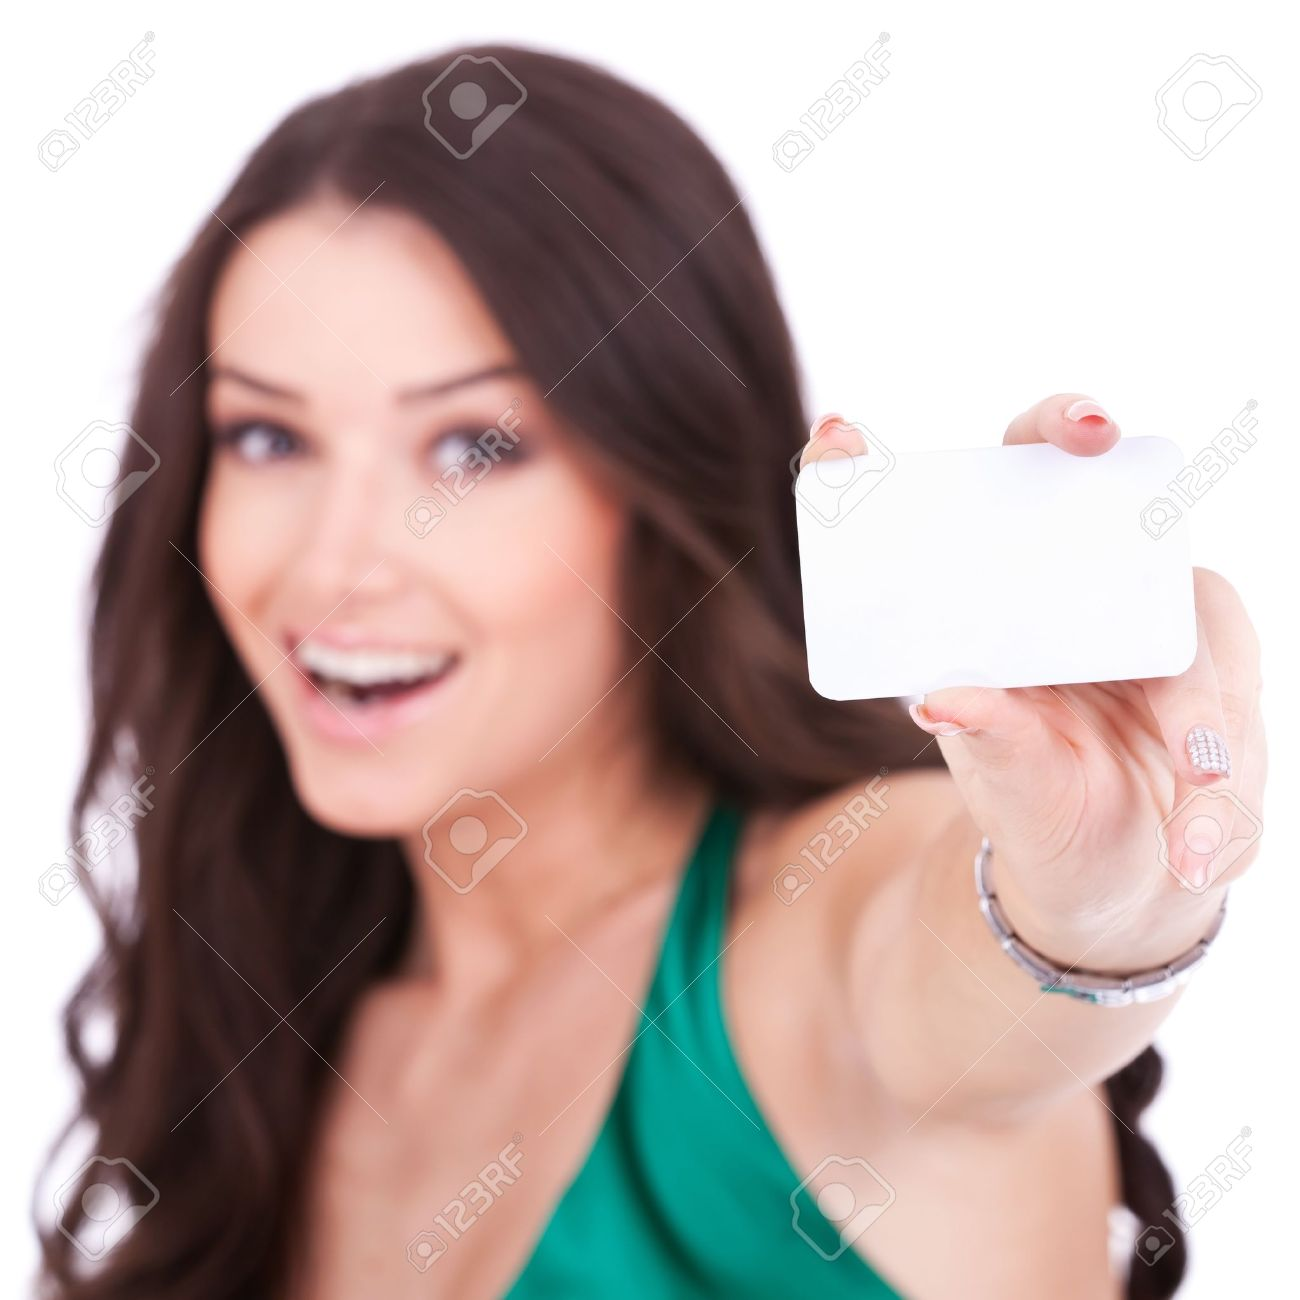 Close-up portrait of female holding credit card, shallow depth of field, focus on the credit card, over white background Stock Photo - 11317525